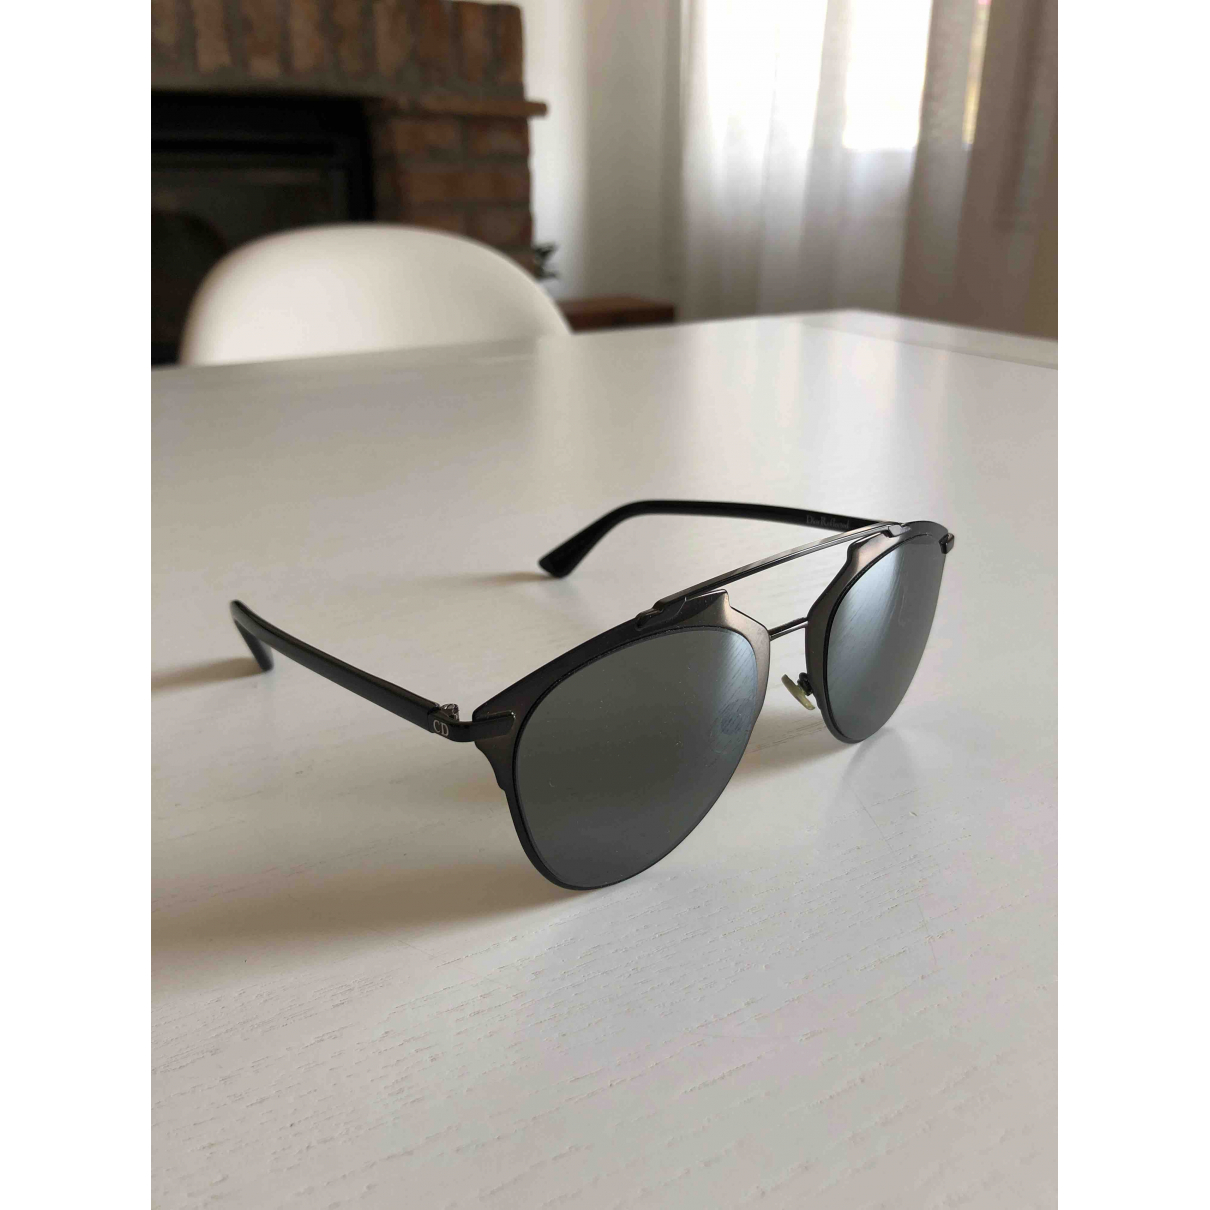 Dior Reflected Sonnenbrillen in  Schwarz Metall